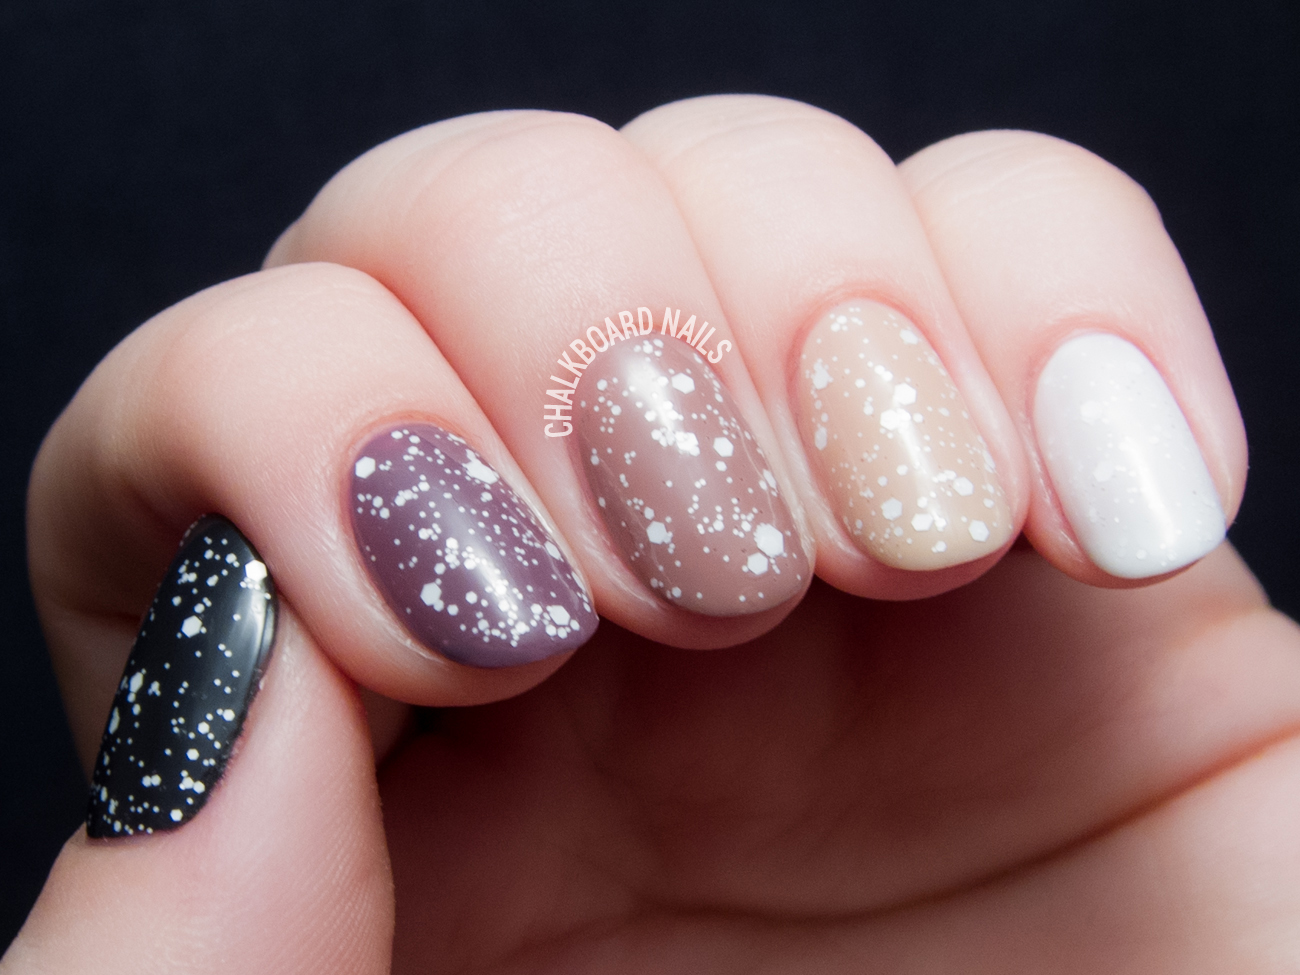 Nude and Mauve Ombre with Lacy Glitter | Chalkboard Nails | Nail Art ...